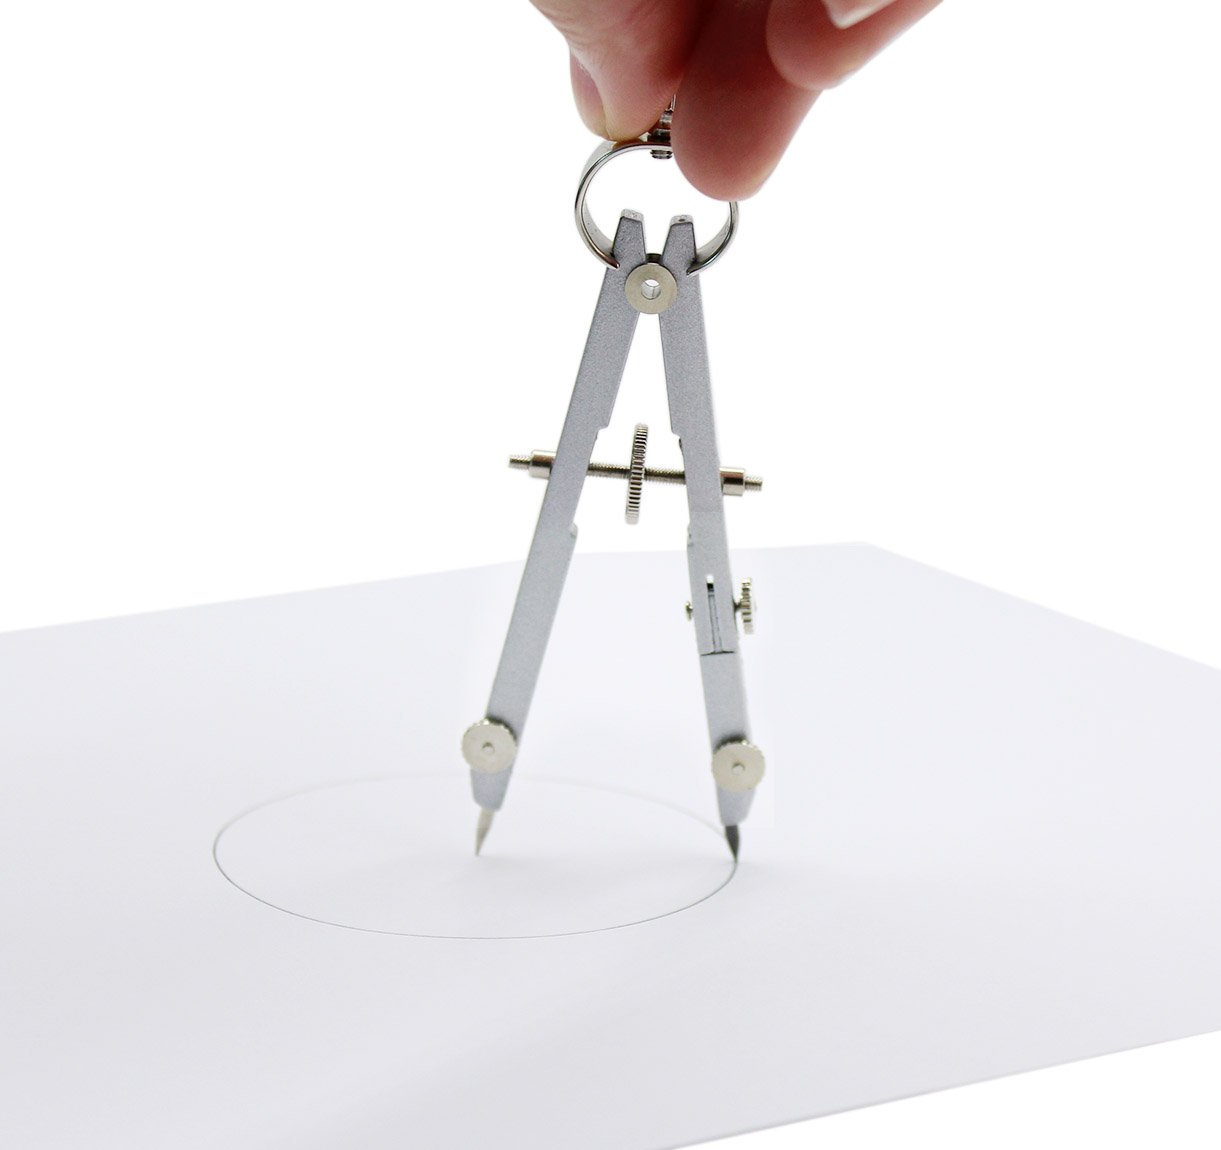 Set of 5, Stainless Steel Circle Drawing Compasses Geometry Sets Math Drafting Dividers Tool Set by Naovio (Image #4)